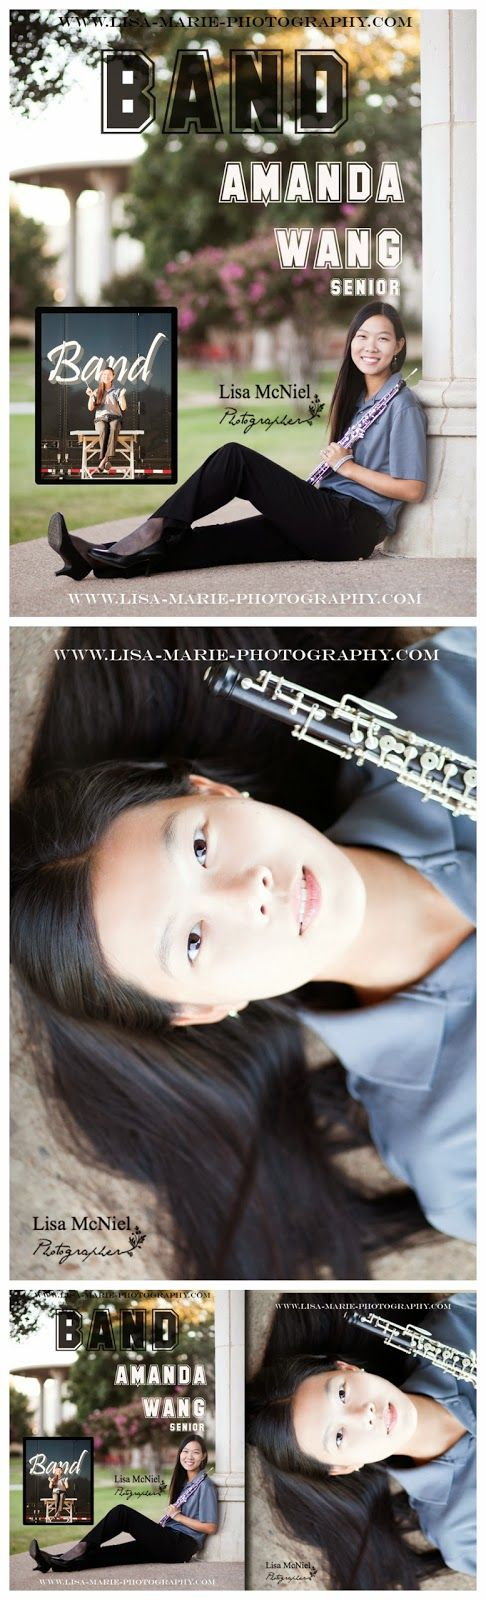 Band senior picture ideas, #Portraits #Seniorpictures #band click the pic to see 20 more senior picture ideas www.Lisa-Marie-Photography.com